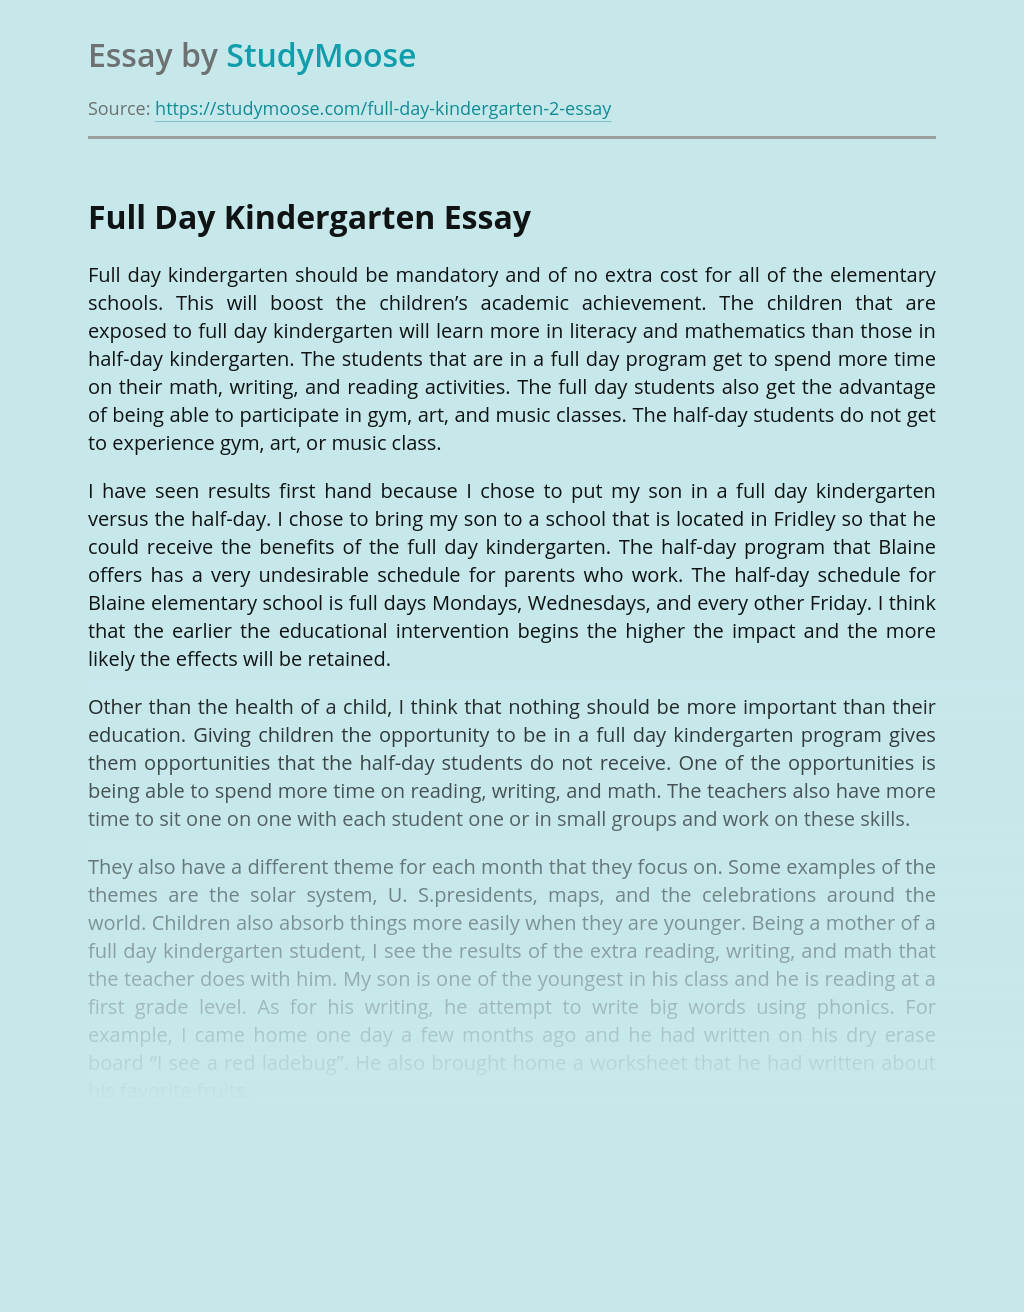 Full-Day Kindergarten Pros and Cons